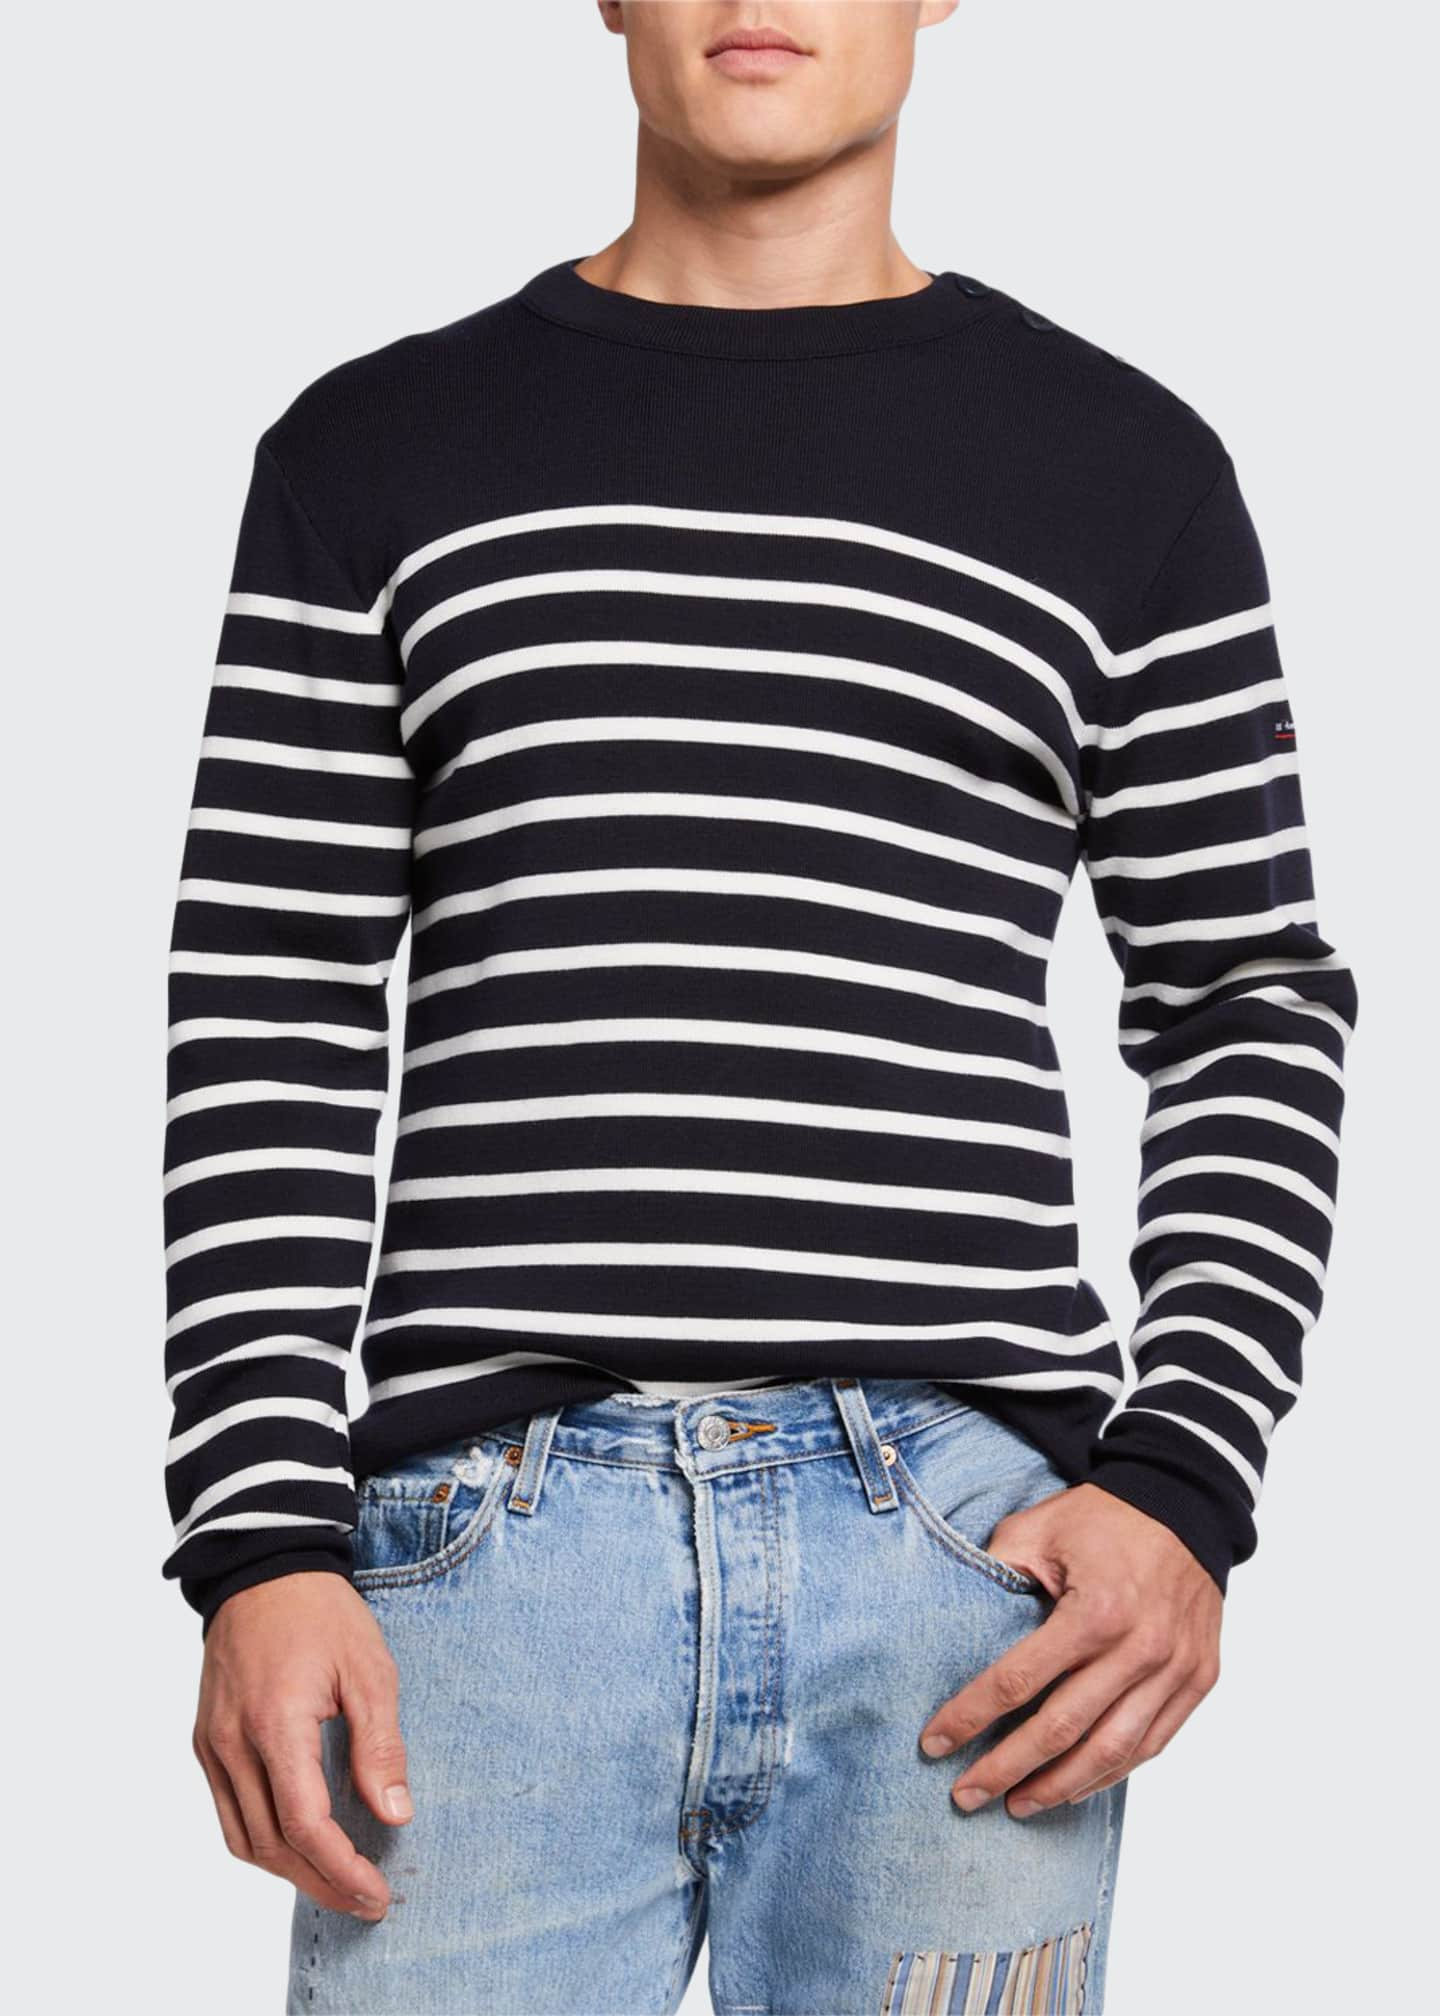 Armor Lux Men's Goulenez Striped Wool Sweater